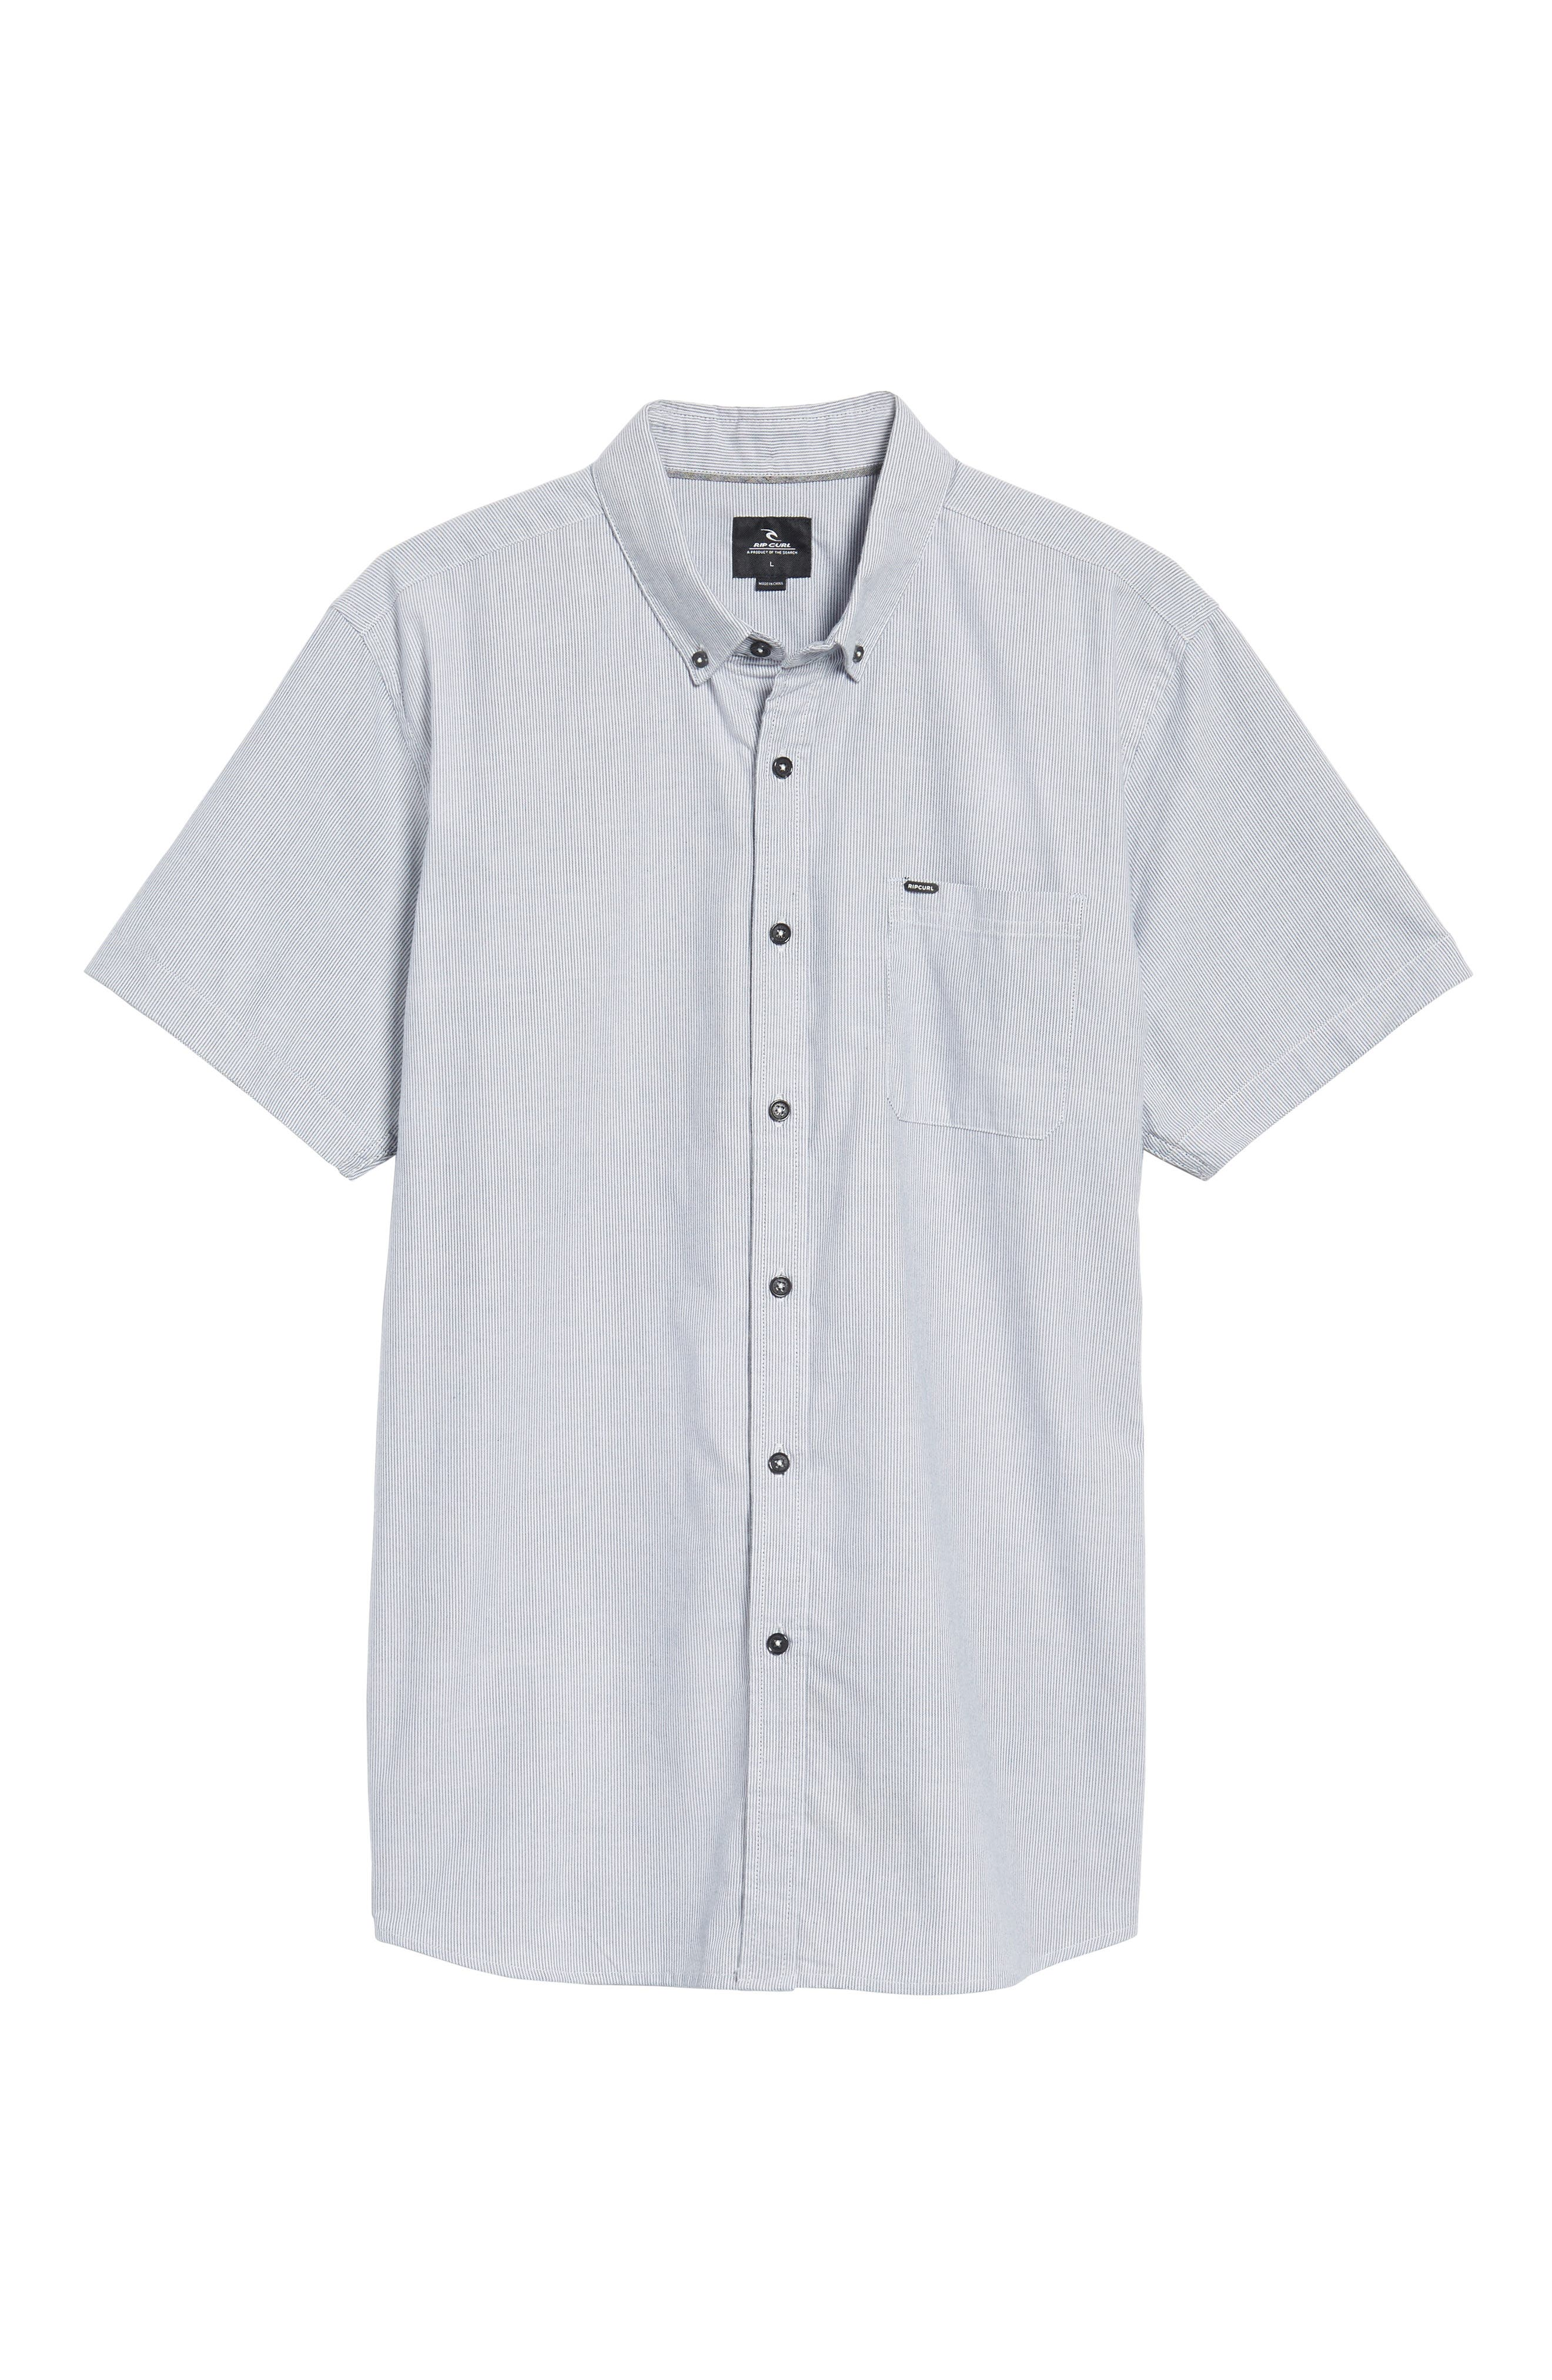 Ourtime Woven Shirt,                             Alternate thumbnail 6, color,                             116